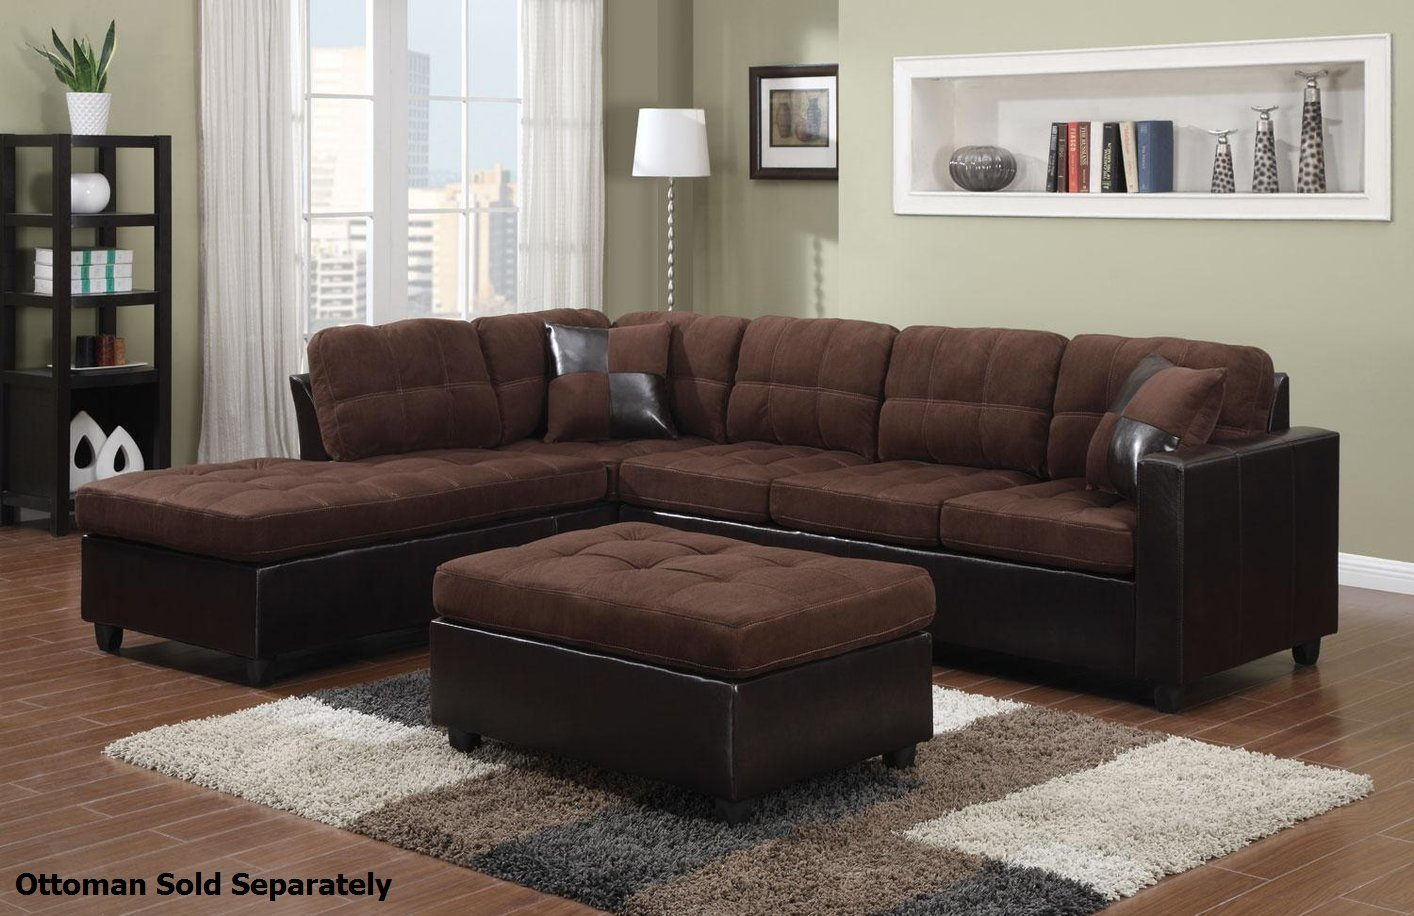 Coaster mallory 505655 brown fabric sectional sofa steal for Mallory material